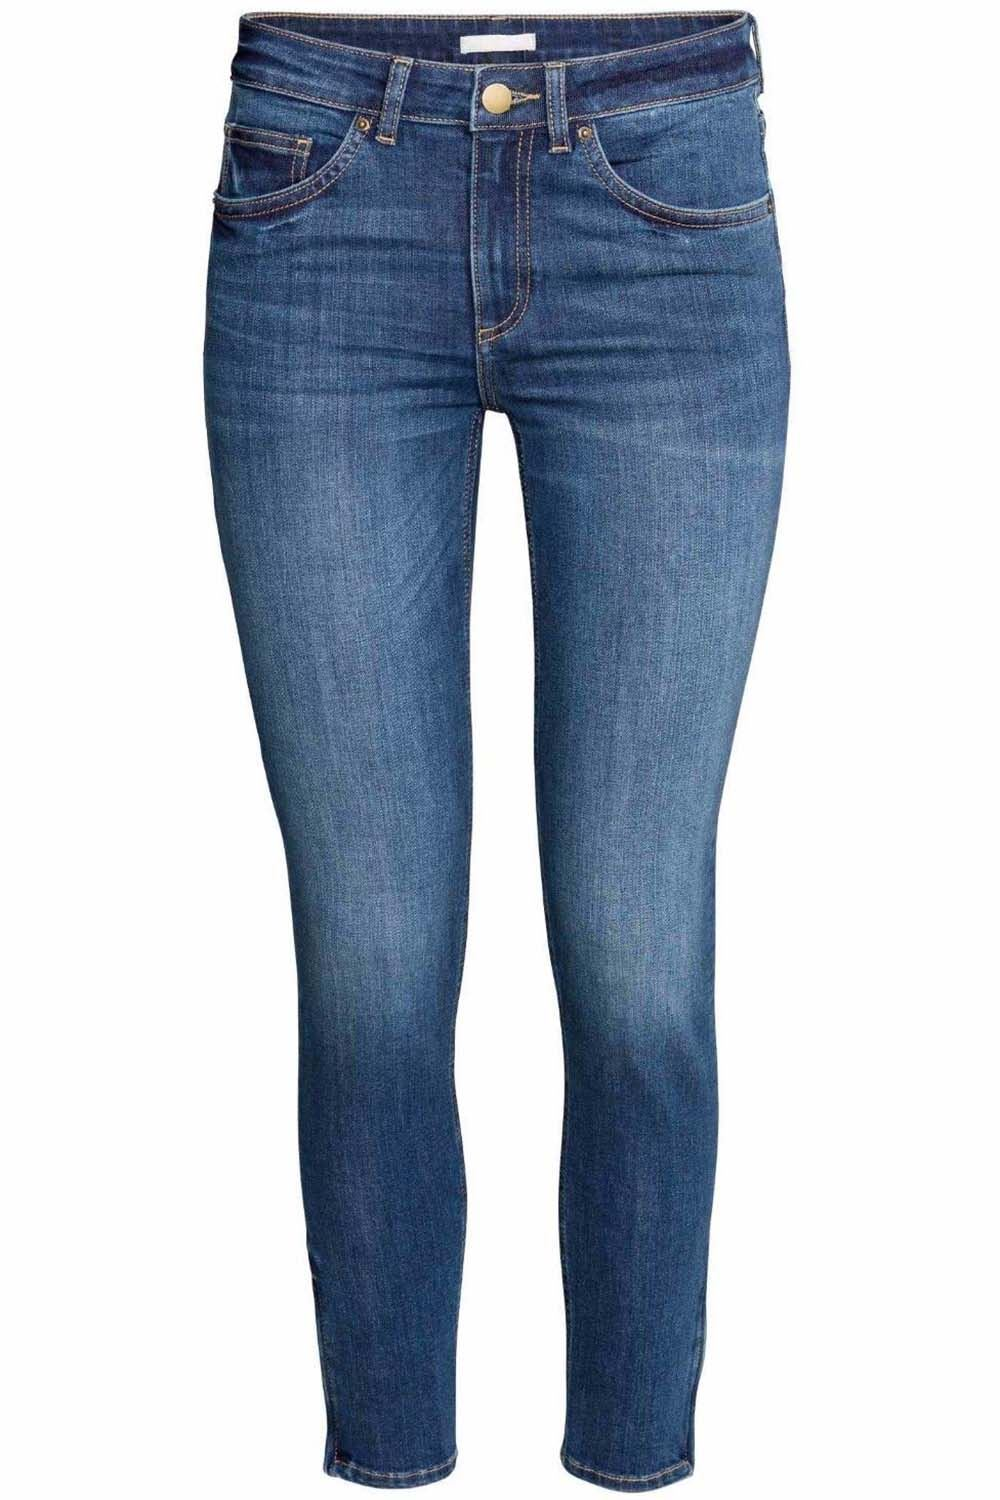 Ladies New Ex-Zara Woman Sand Wash Denim Spandex Jeans Trouser Plus Size 8-18 | eBay